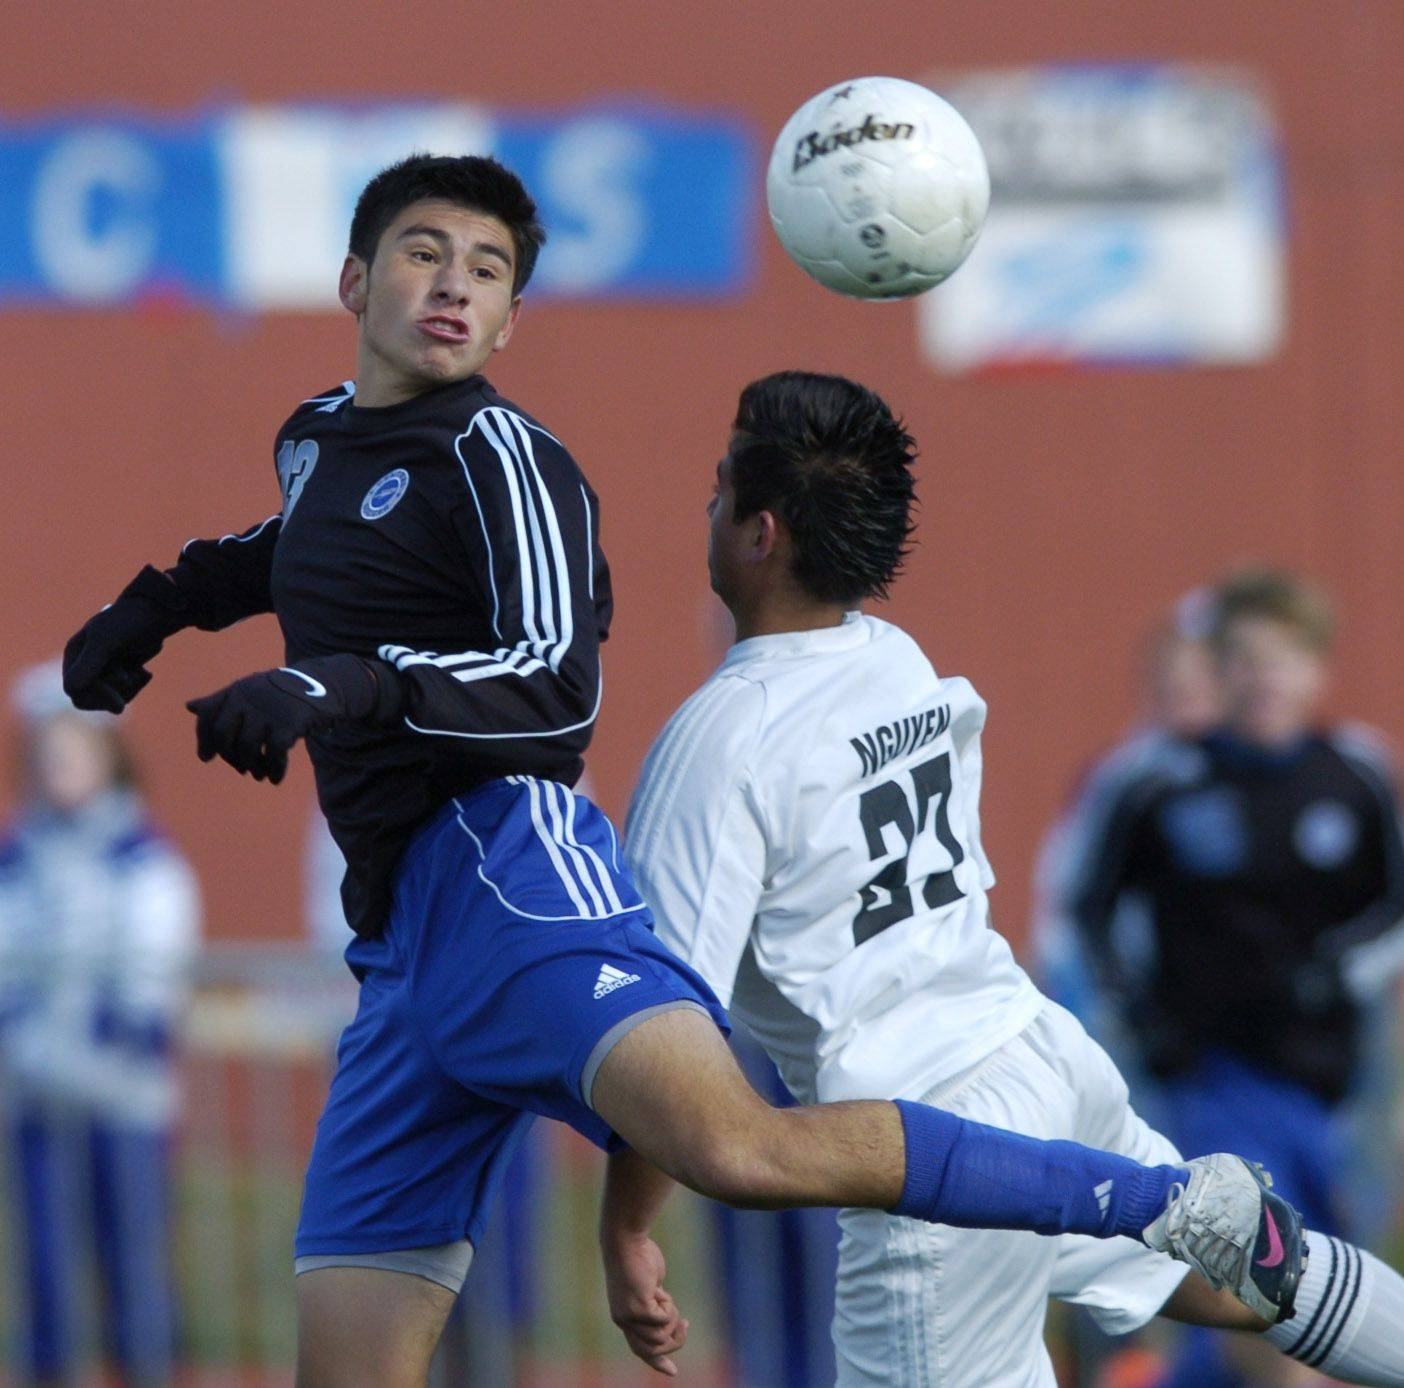 Burlington Central's Erick Uribe directs the ball with a header past Ridgewood's Maciej Nguyen during Friday's Class 2A state boys soccer semifinal.